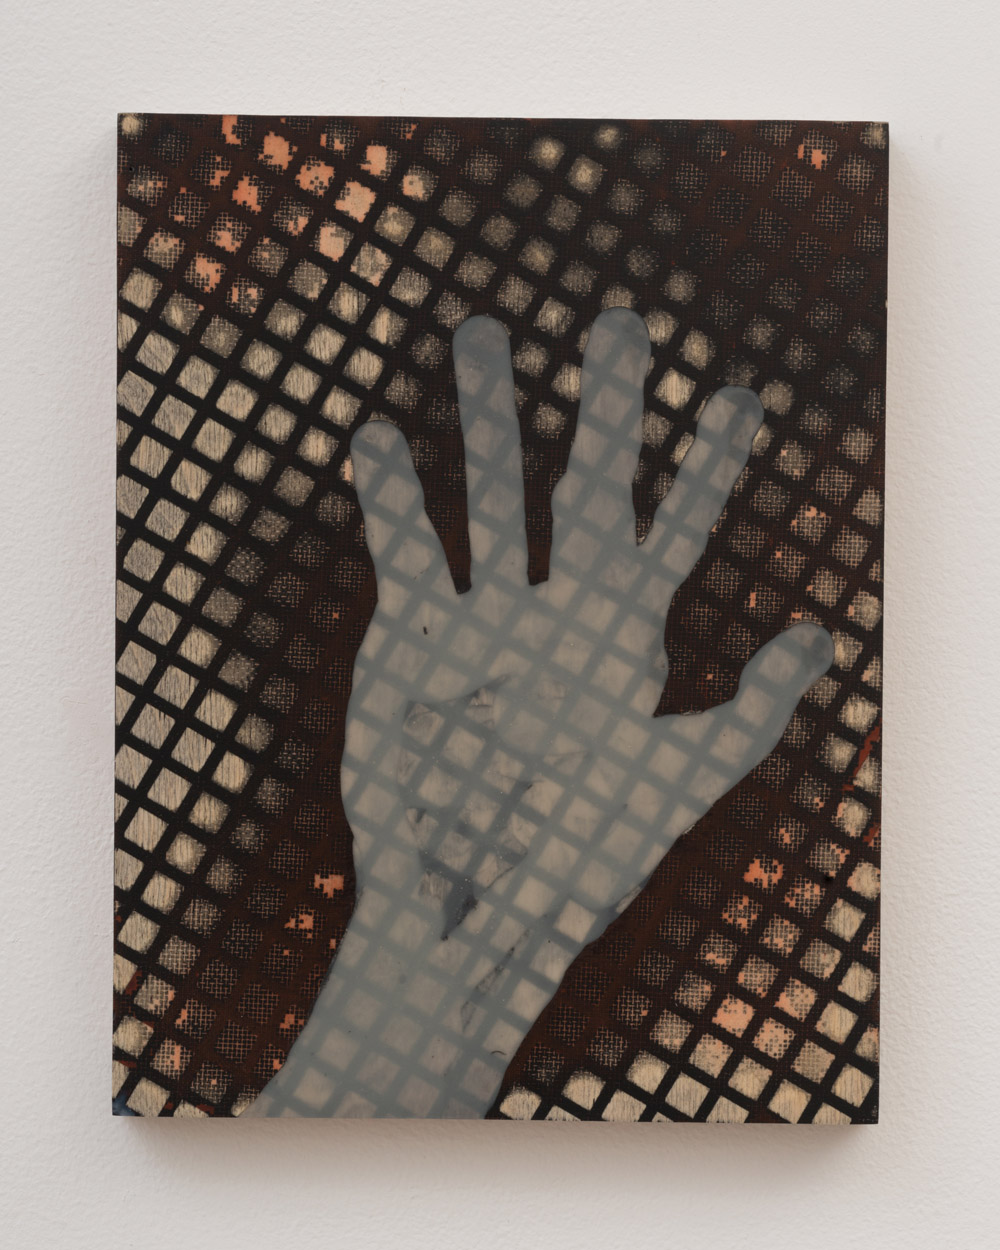 """<p><span class=""""name"""">Tommy Coleman</span><br><em>Out of Hand (Touching)</em><span class='media'>UV resistant epoxy resin, and phosphorescent pigment on panel</span>11 x 8.5 in (27.9 x 21.6 cm)<br>2018<br><a class='inquire' href='mailto:info@gildargallery.com?subject=Artwork Inquiry TCOL0013&body=I am interested in finding out more about Out of Hand (Touching) by Tommy Coleman'>Inquire</a></p>"""